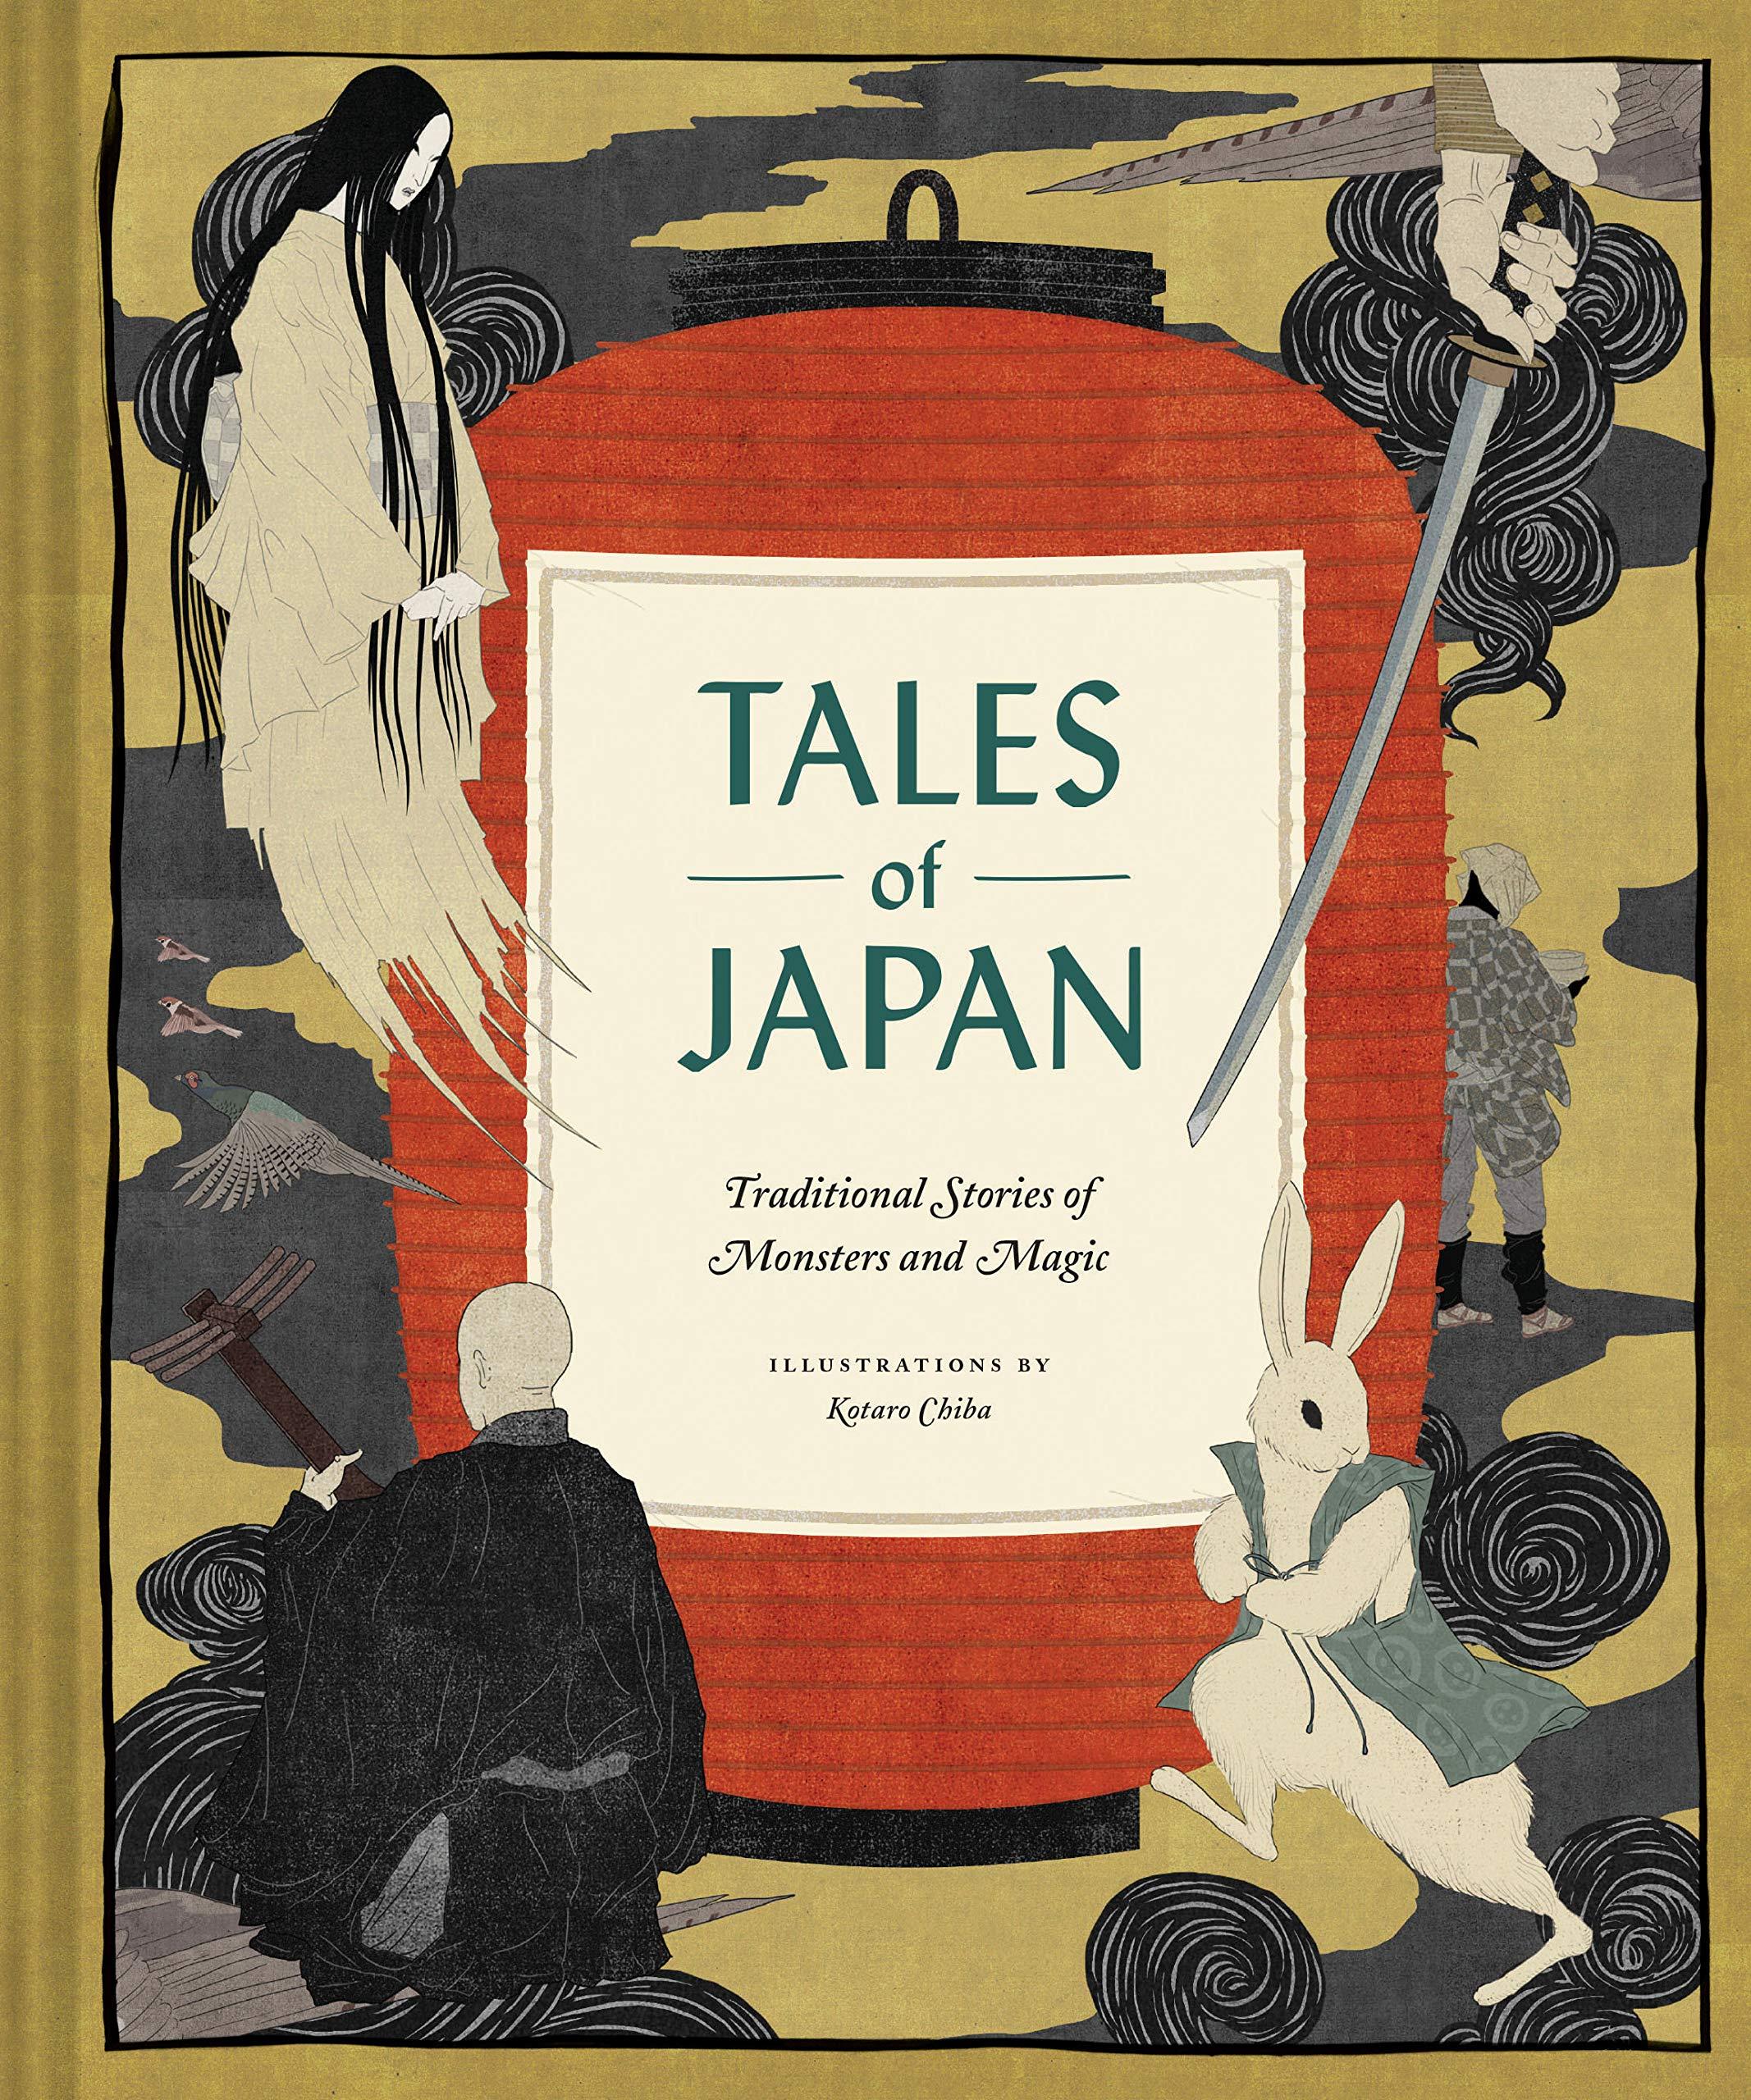 Tales of Japan: Traditional Stories of Monsters and Magic (Book of Japanese Mythology, Folk Tales from Japan)